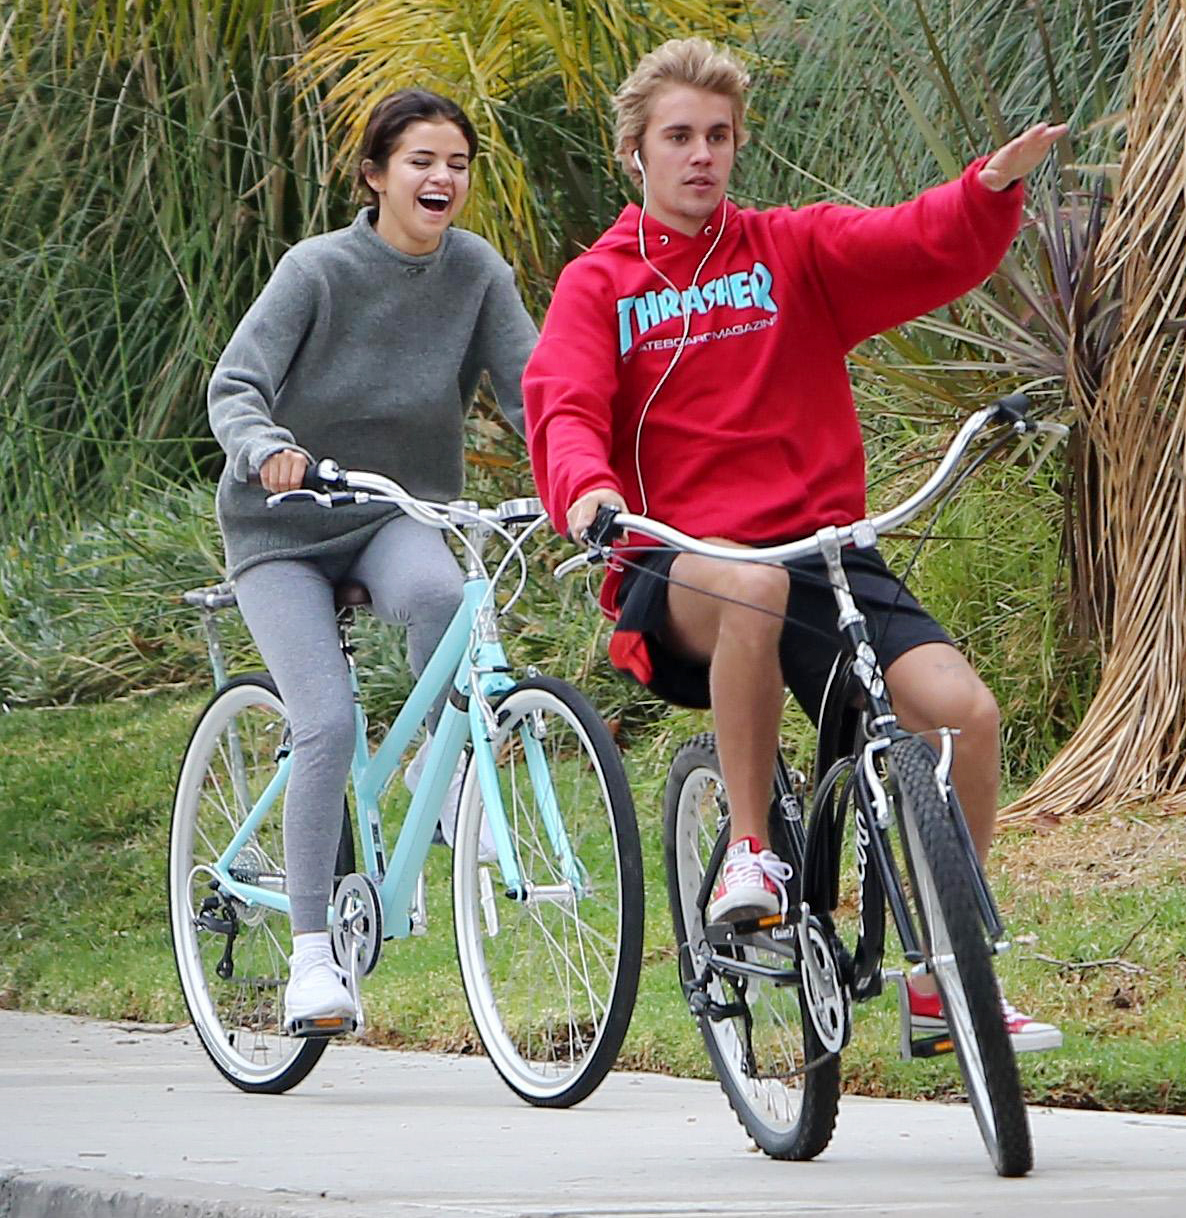 Justin Bieber Thinks Girlfriend Selena Gomez Is 'The One'